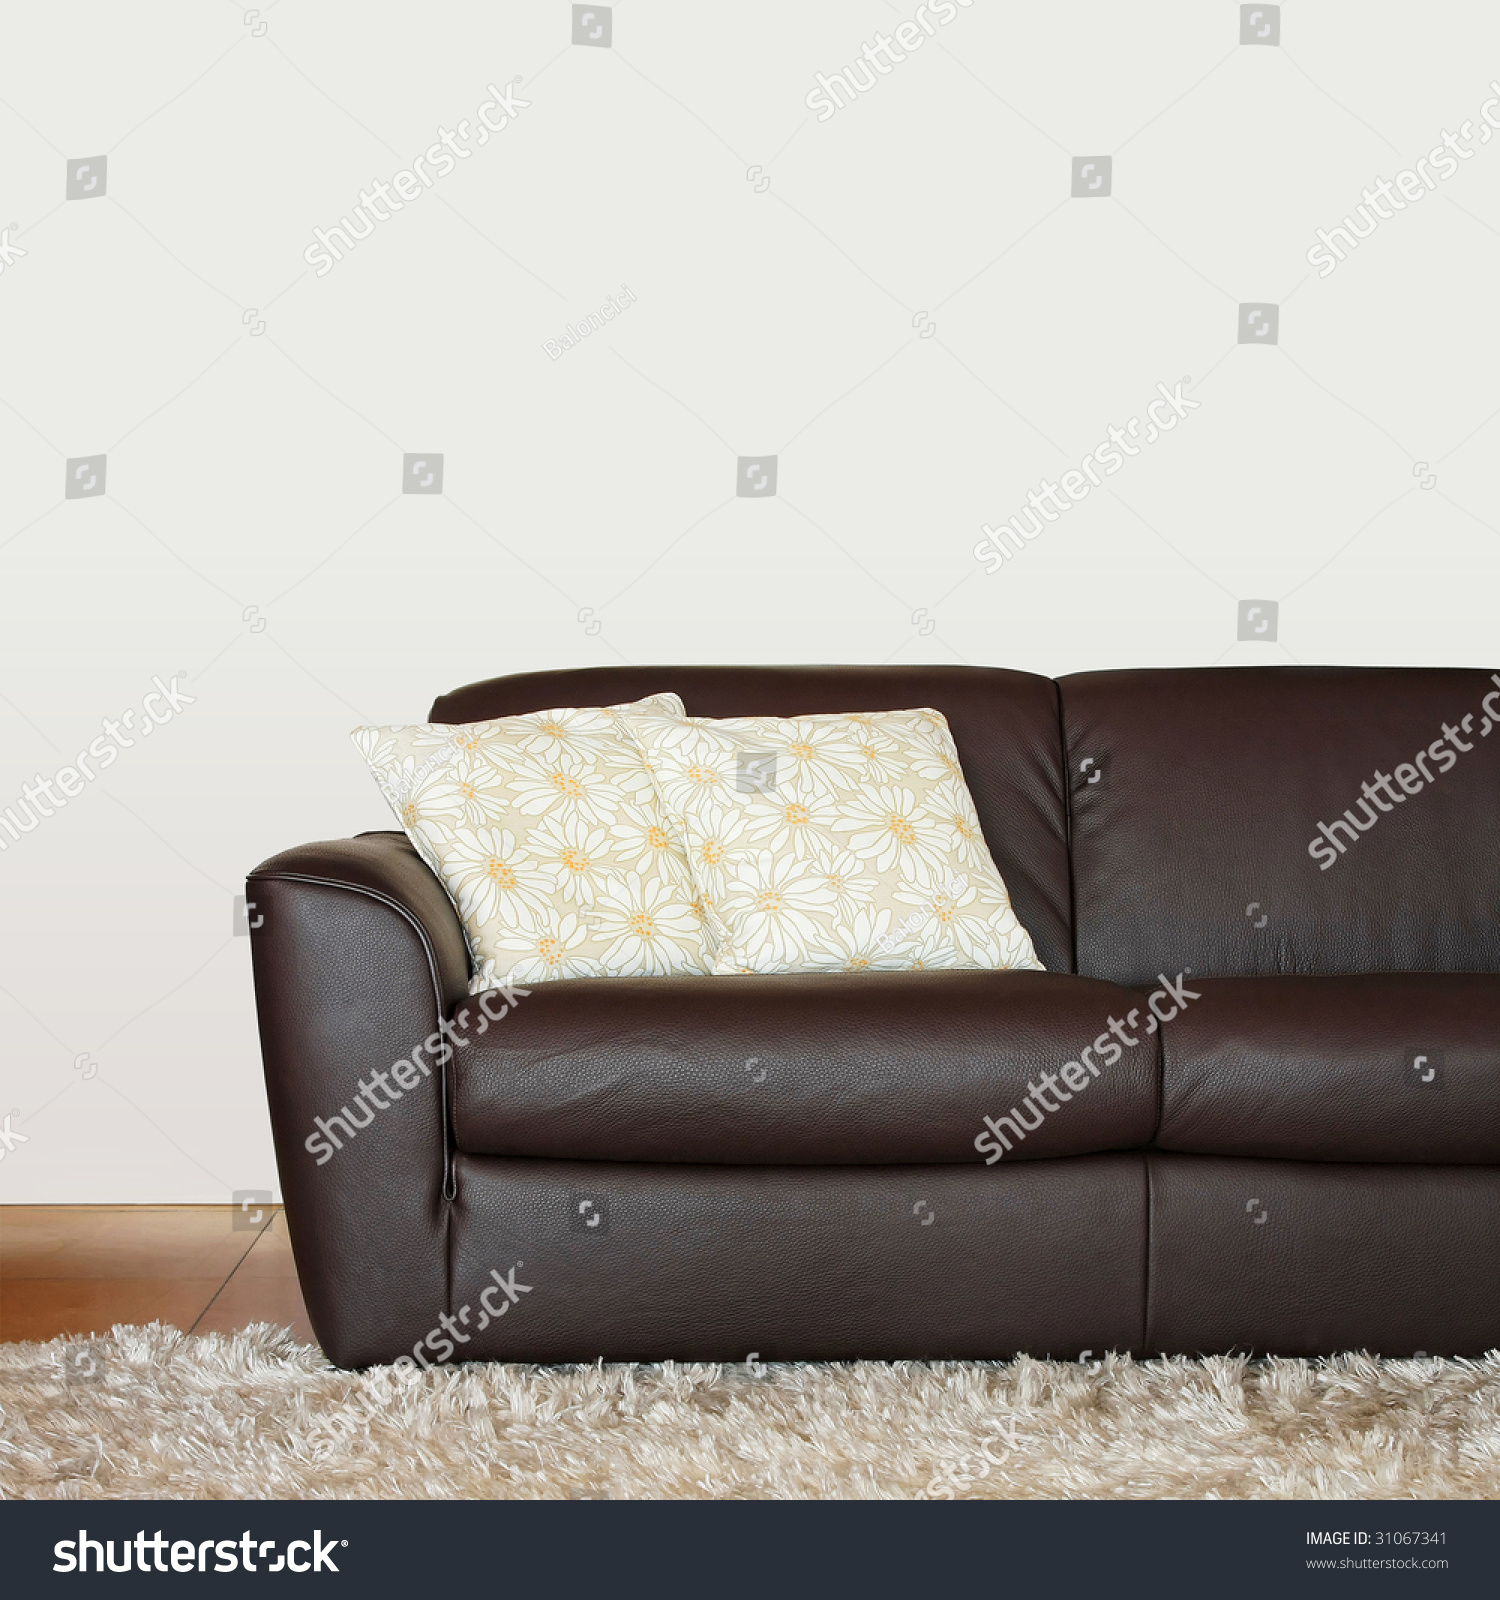 Picture of: Part Brown Leather Sofa Pillows Stock Photo Edit Now 31067341